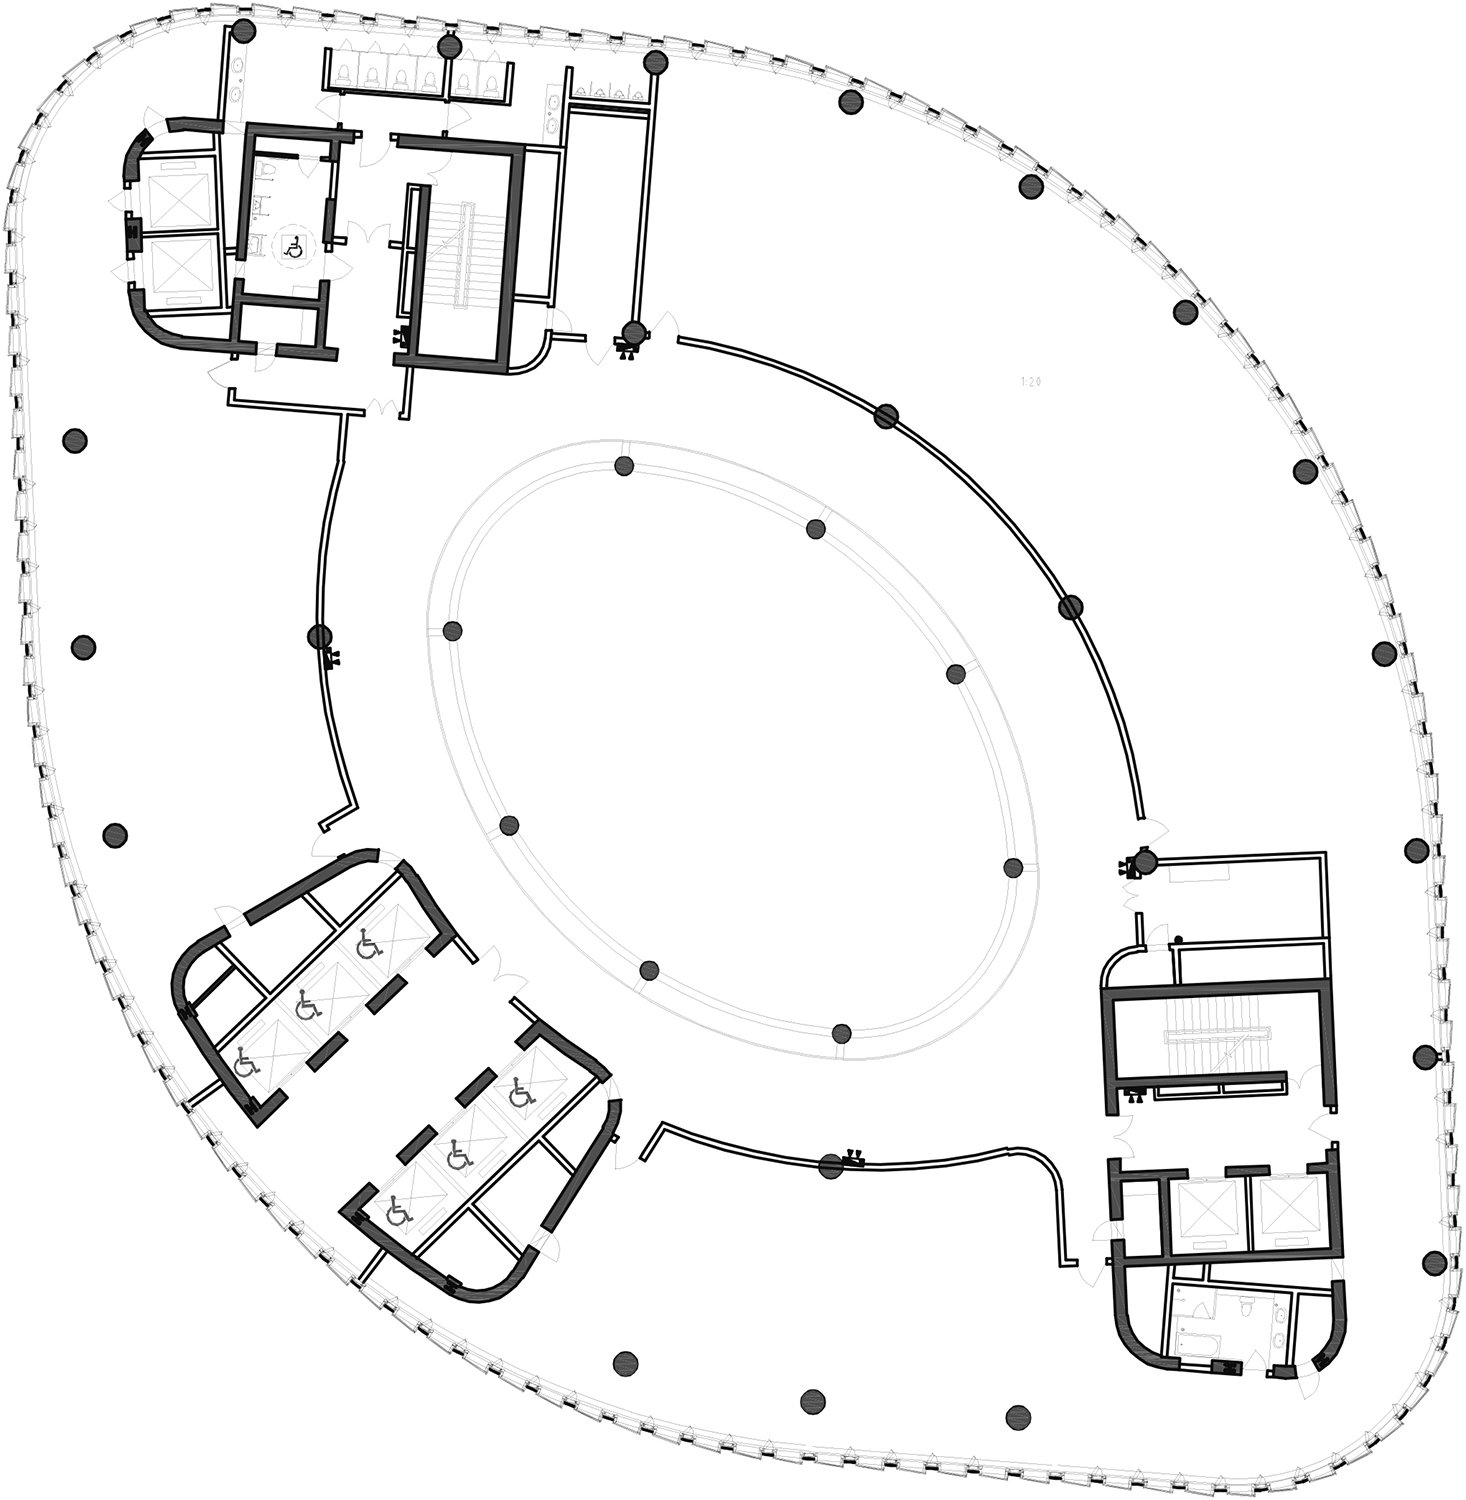 16th Floor Plan The Architectural Design & Research Institute of Zhejiang University; Architects von Gerkan, Marg and Partners (gmp)}